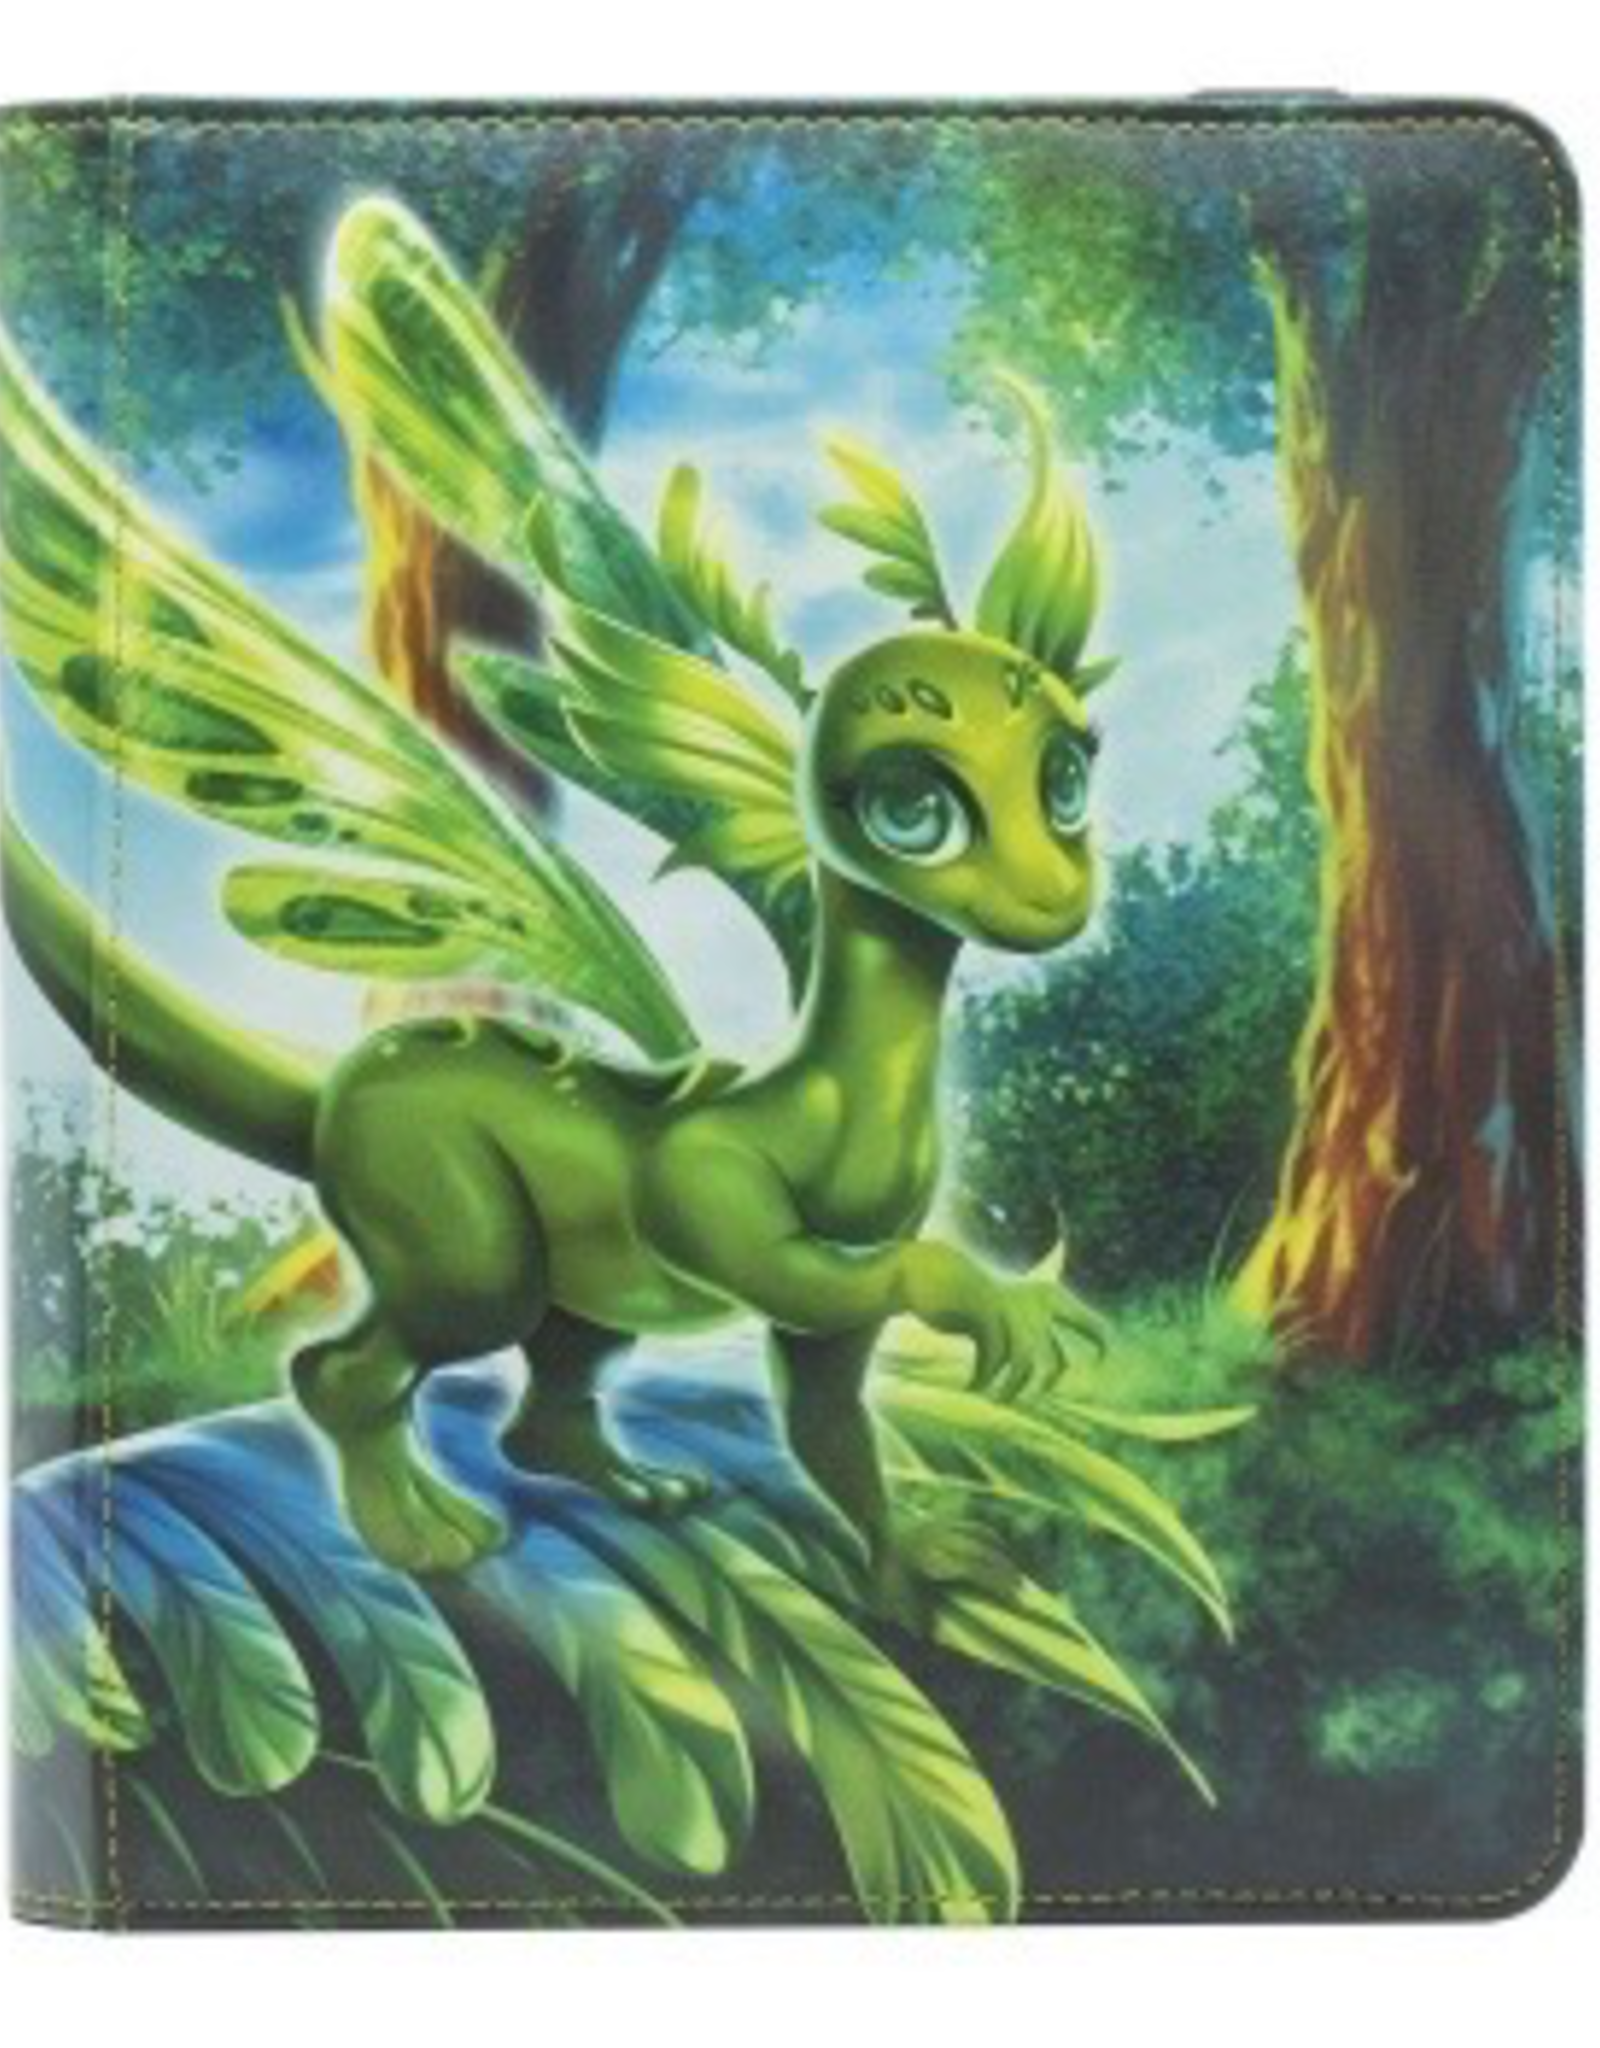 DS - Binder Dragon Shield Card Codex Portfolio 160 - Olive 'Peah'